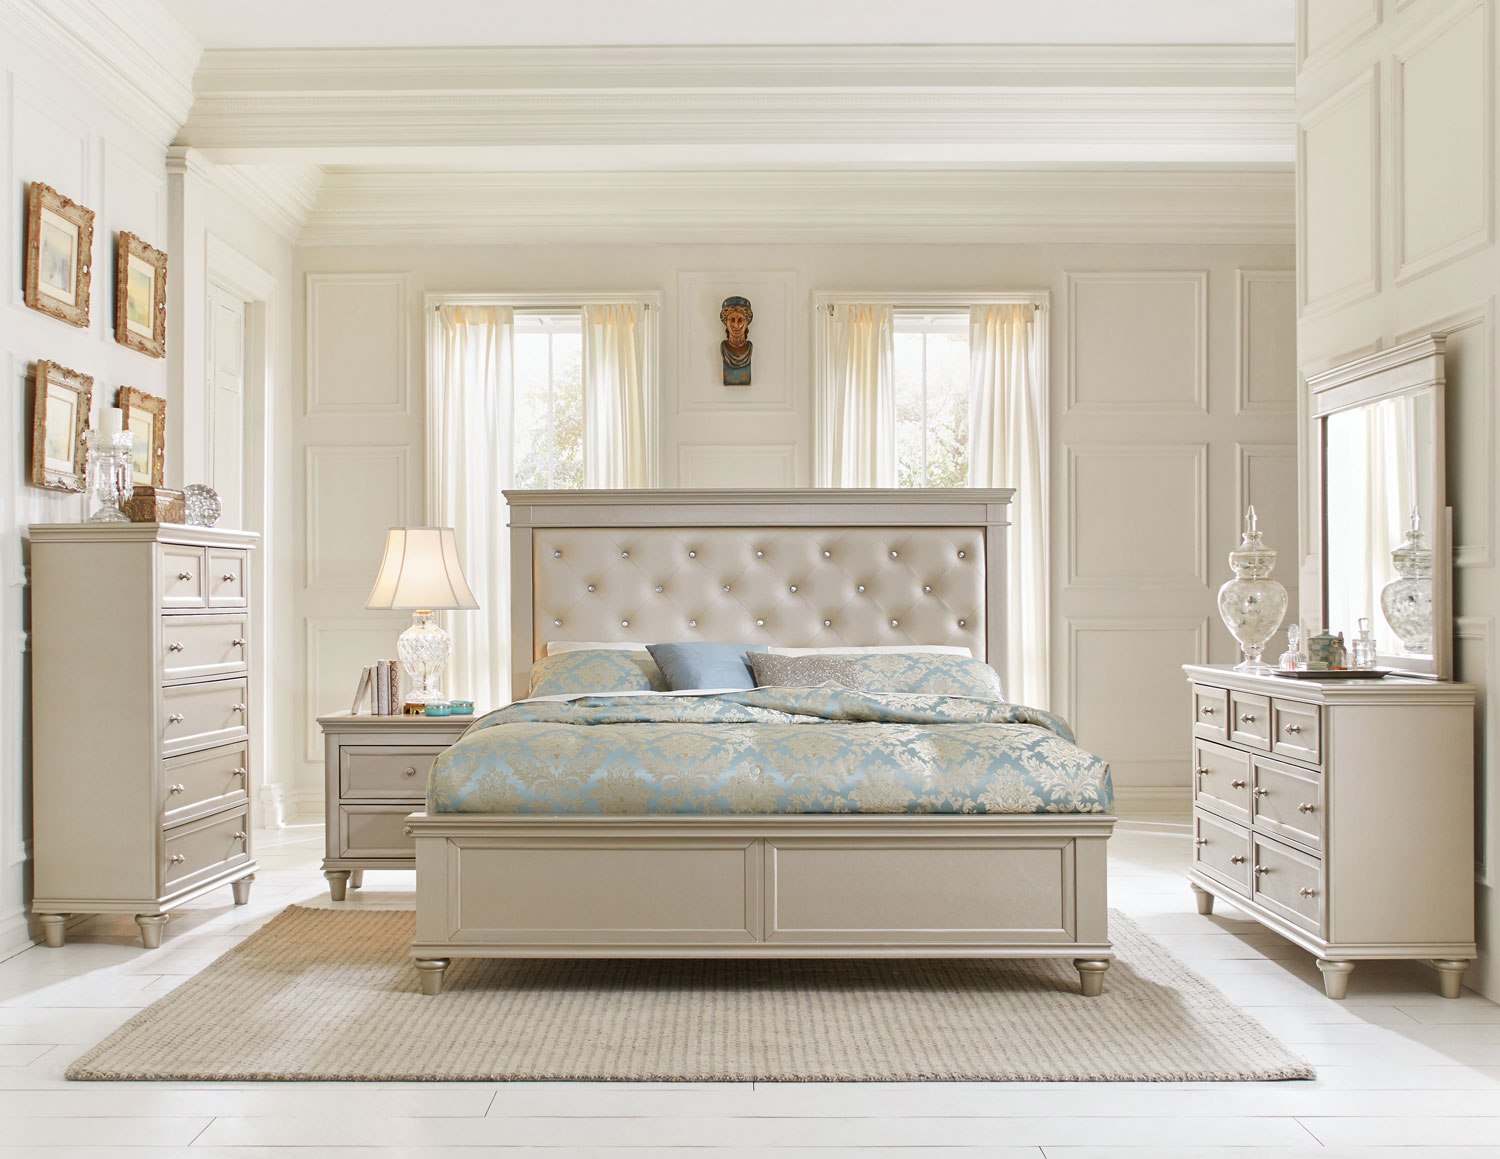 Homelegance Celandine Upholstered Bedroom Set - Silver B1928-1 at ...